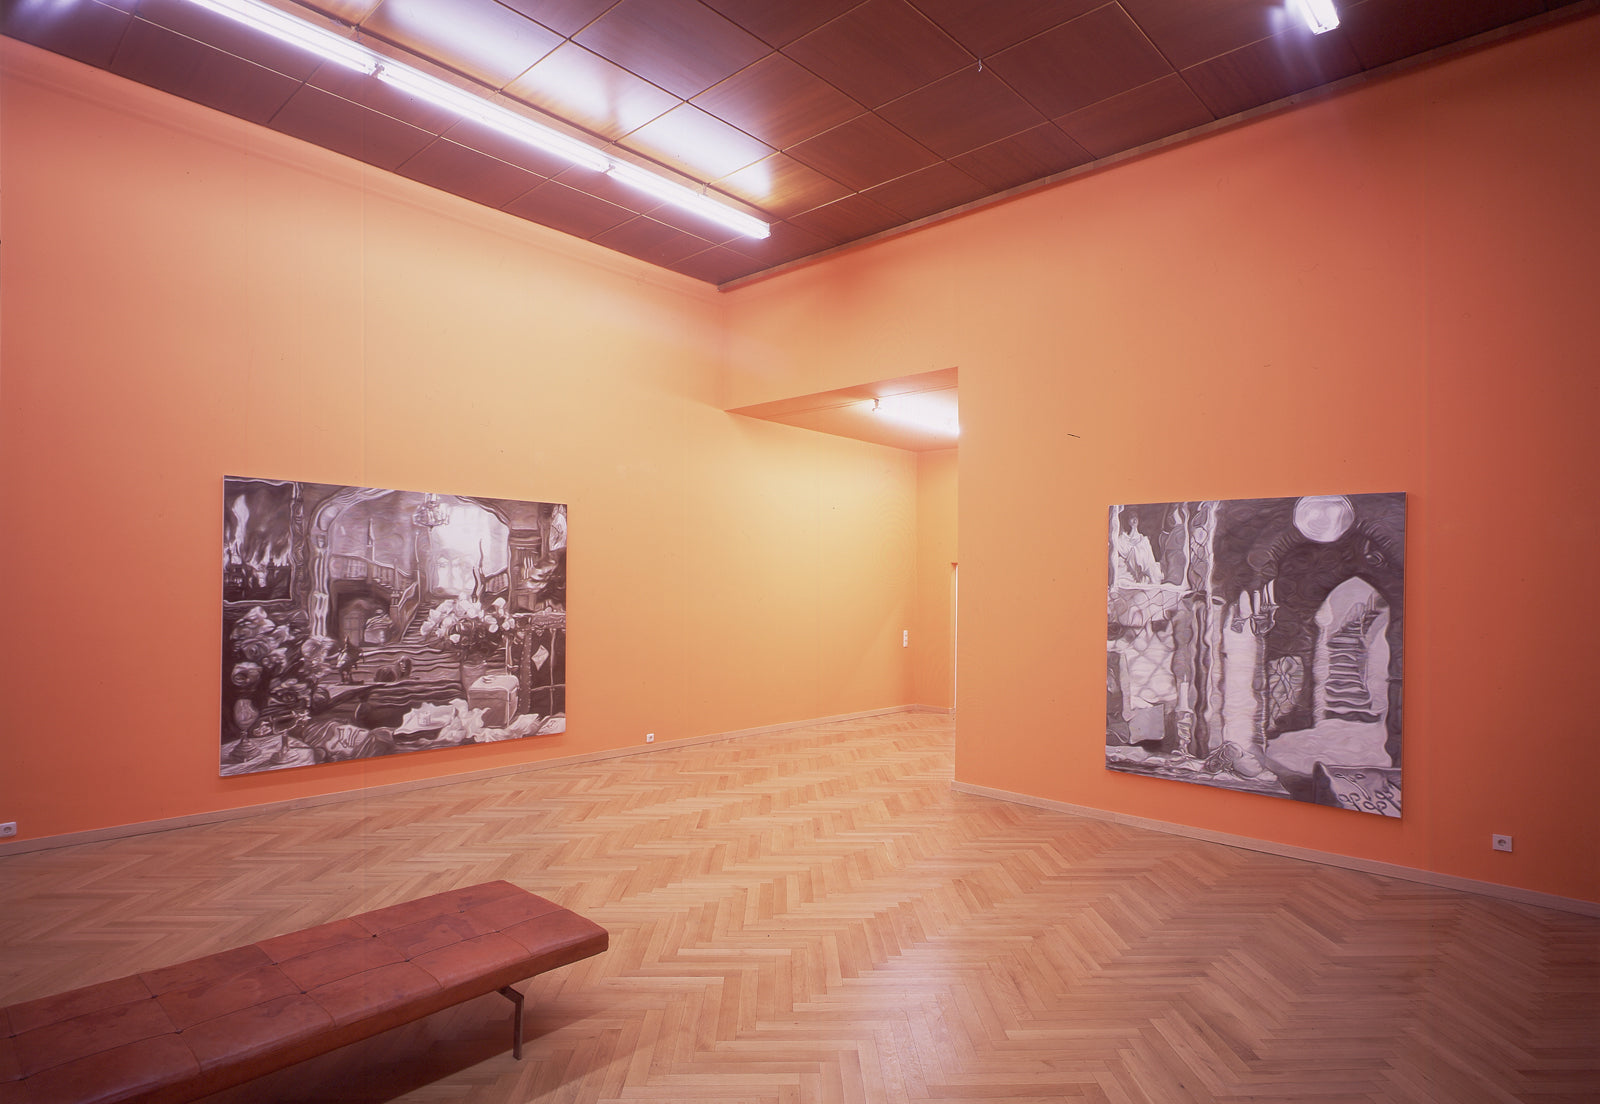 Christoph Steinmeyer, Hotel Déjàvu, Installation view, 2006, Galerie Michael Janssen, Cologne